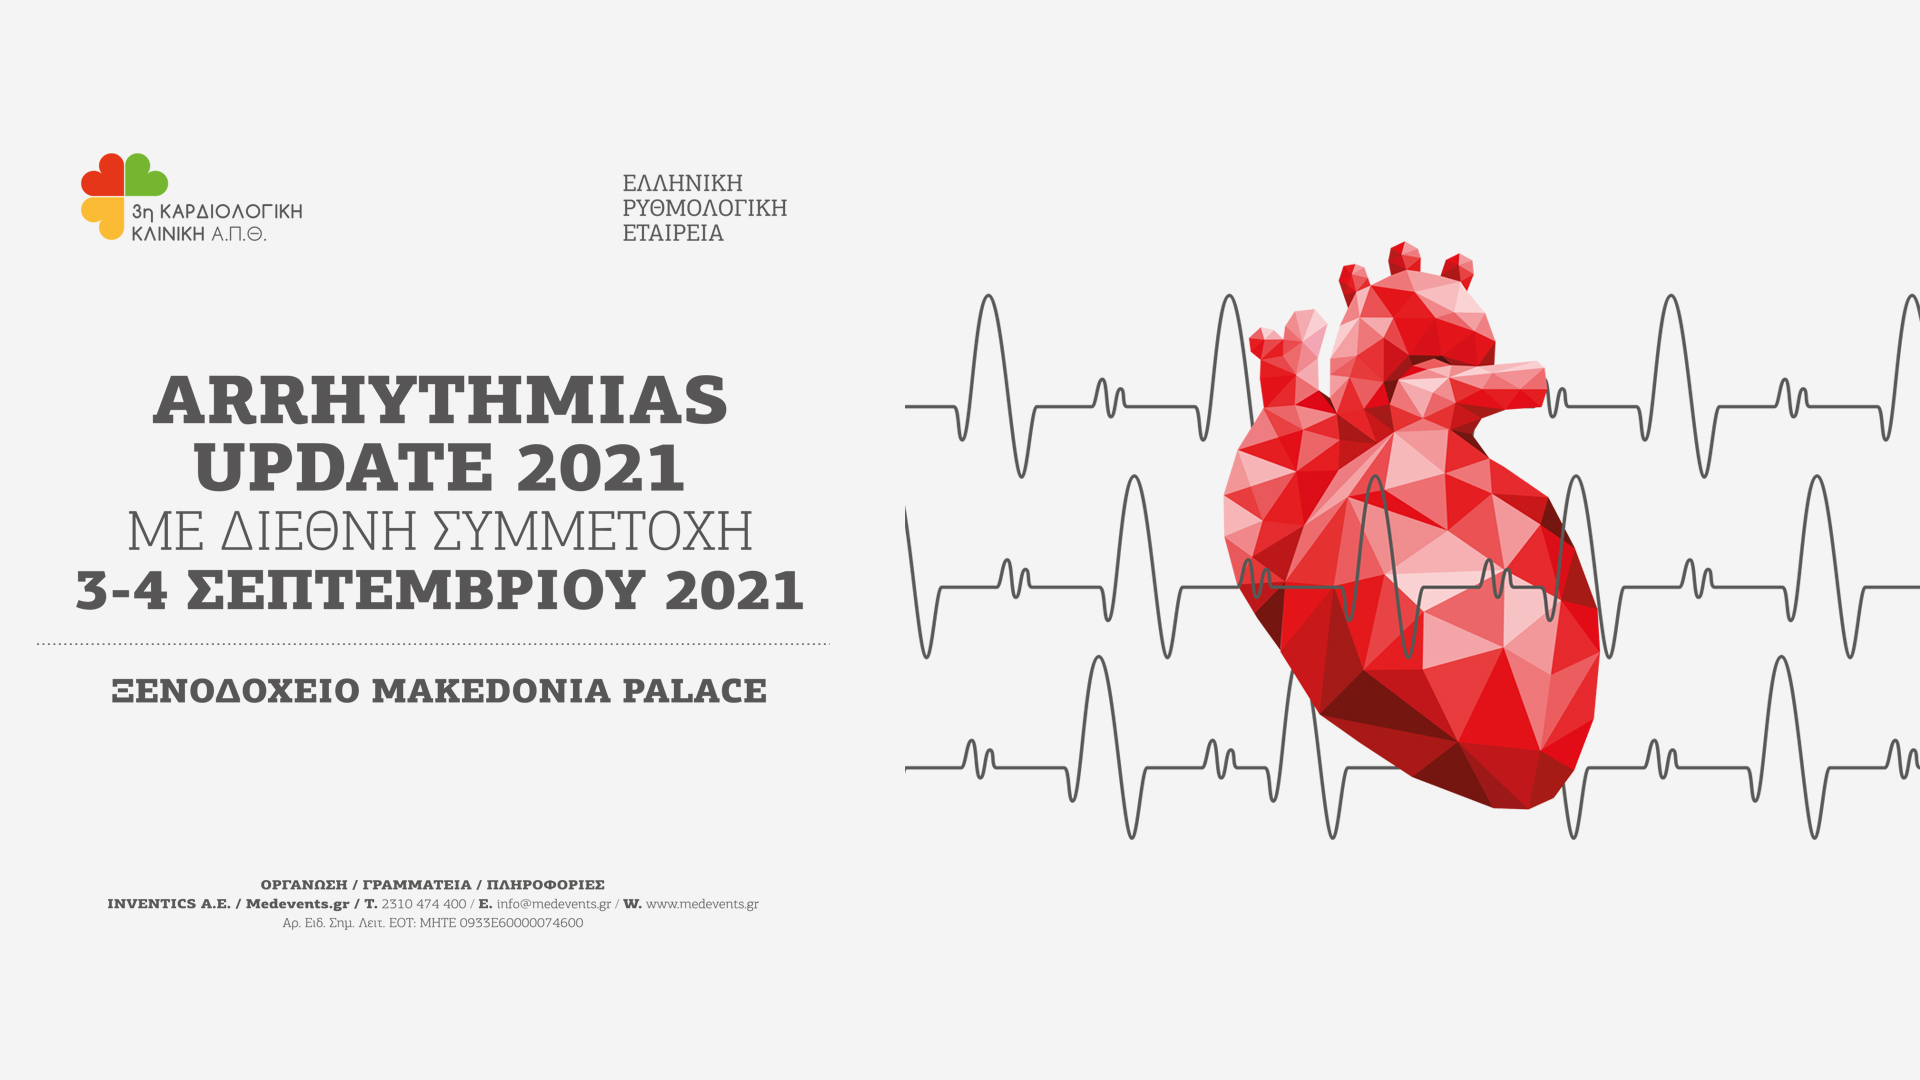 Arrhythmias Update 2021